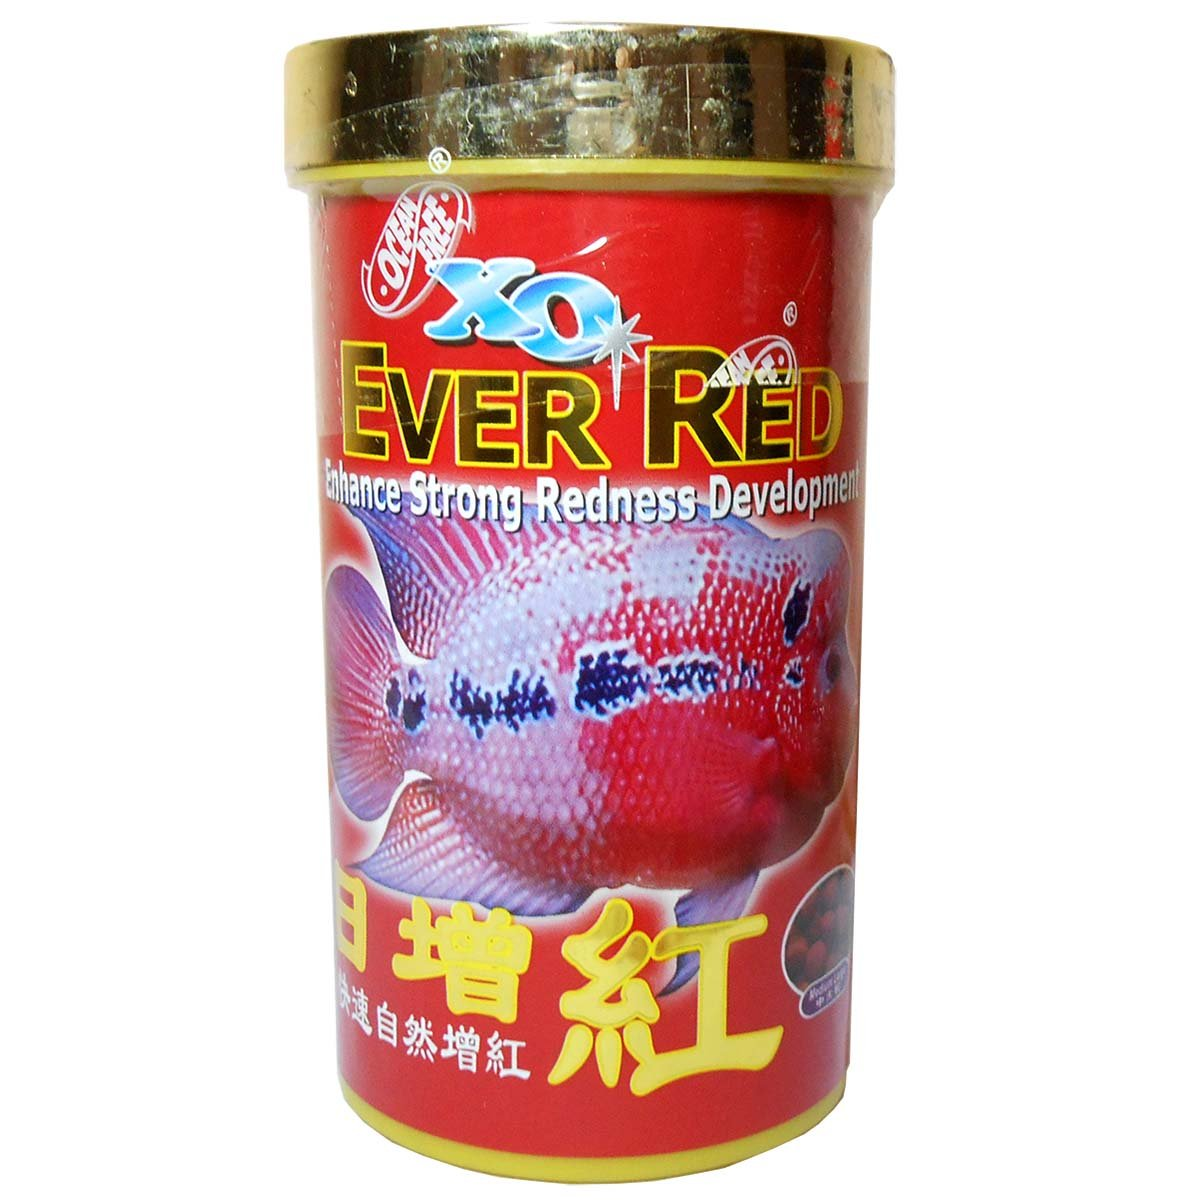 Buy Xo Ever Red Fish Food 100G Online at Low Prices in India - Amazon.in